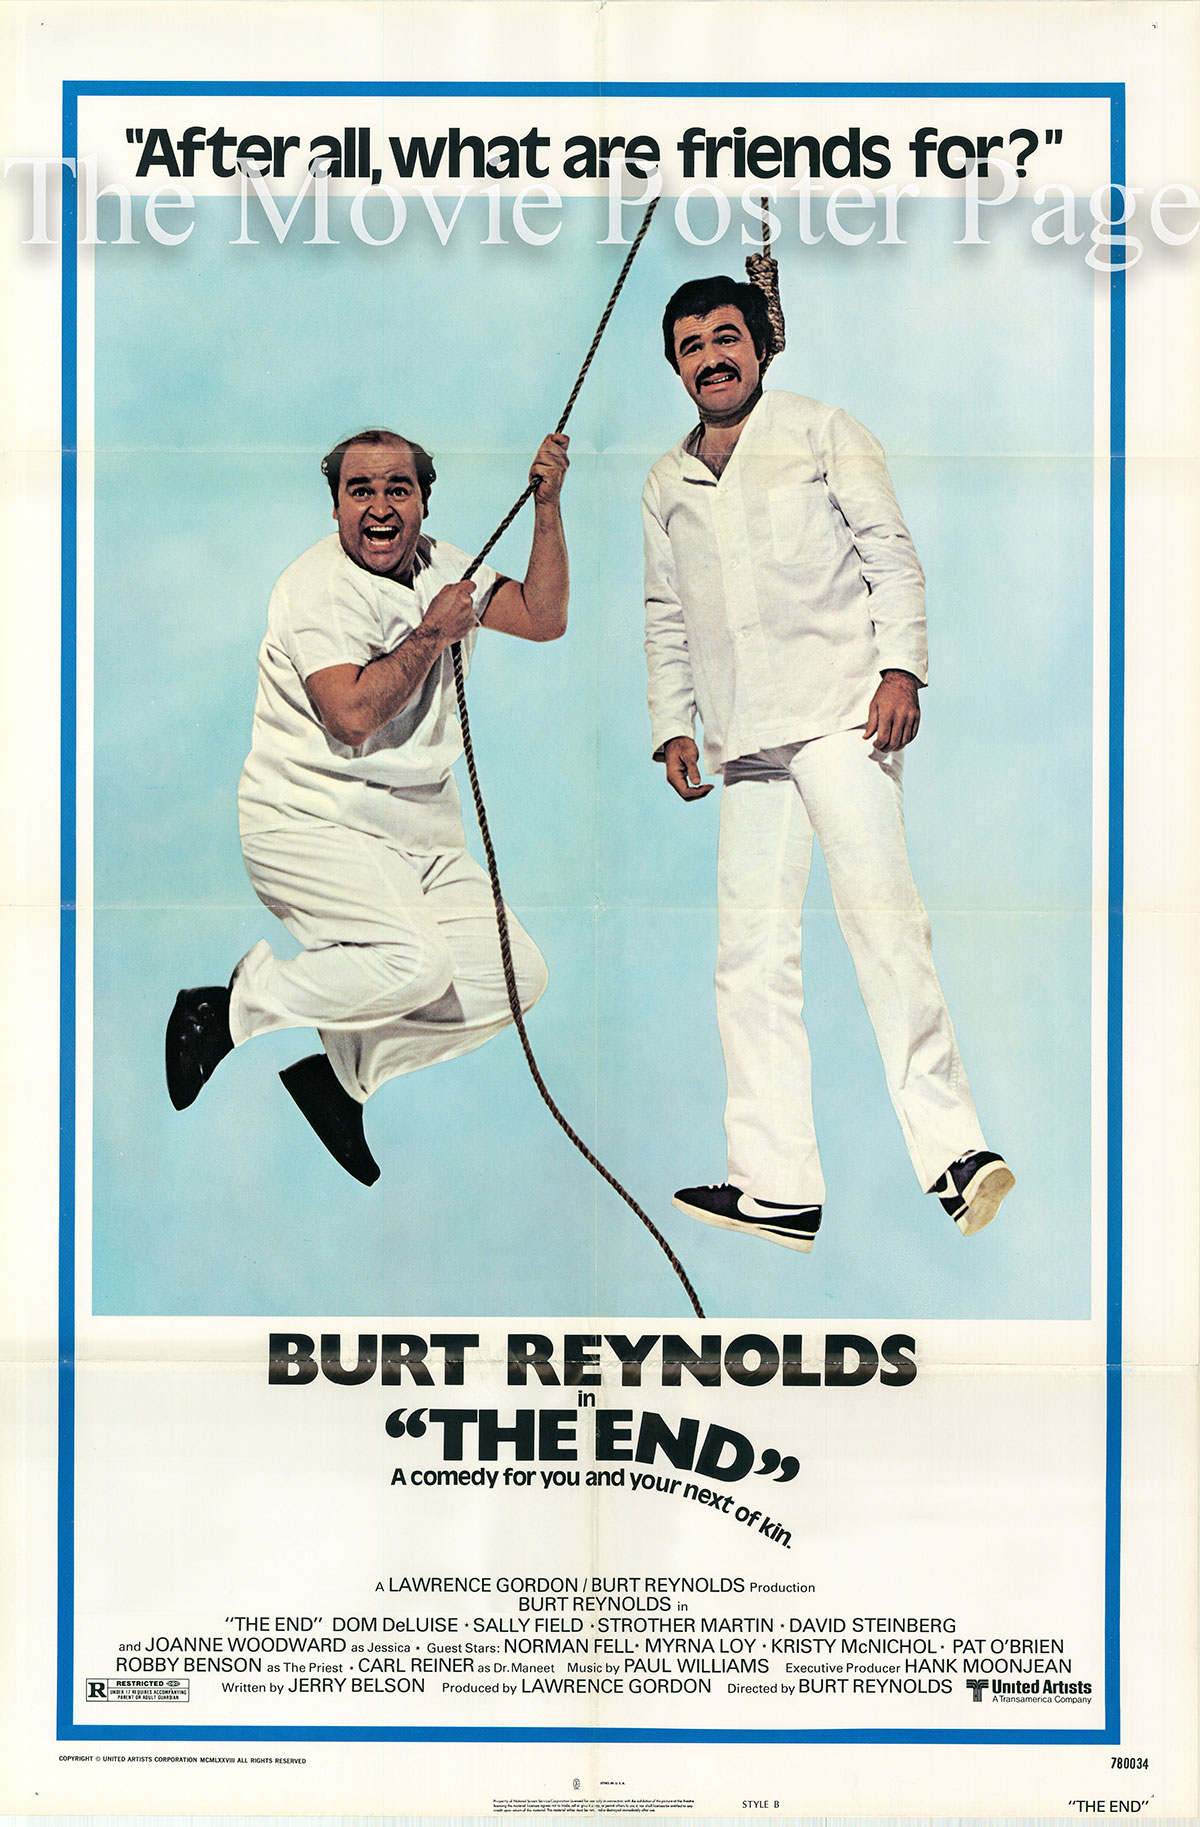 Pictured is a style B US one-sheet promotional poster for the 1978 Burt Reynolds film The End starring Burt Reynolds and Dom DeLuise.